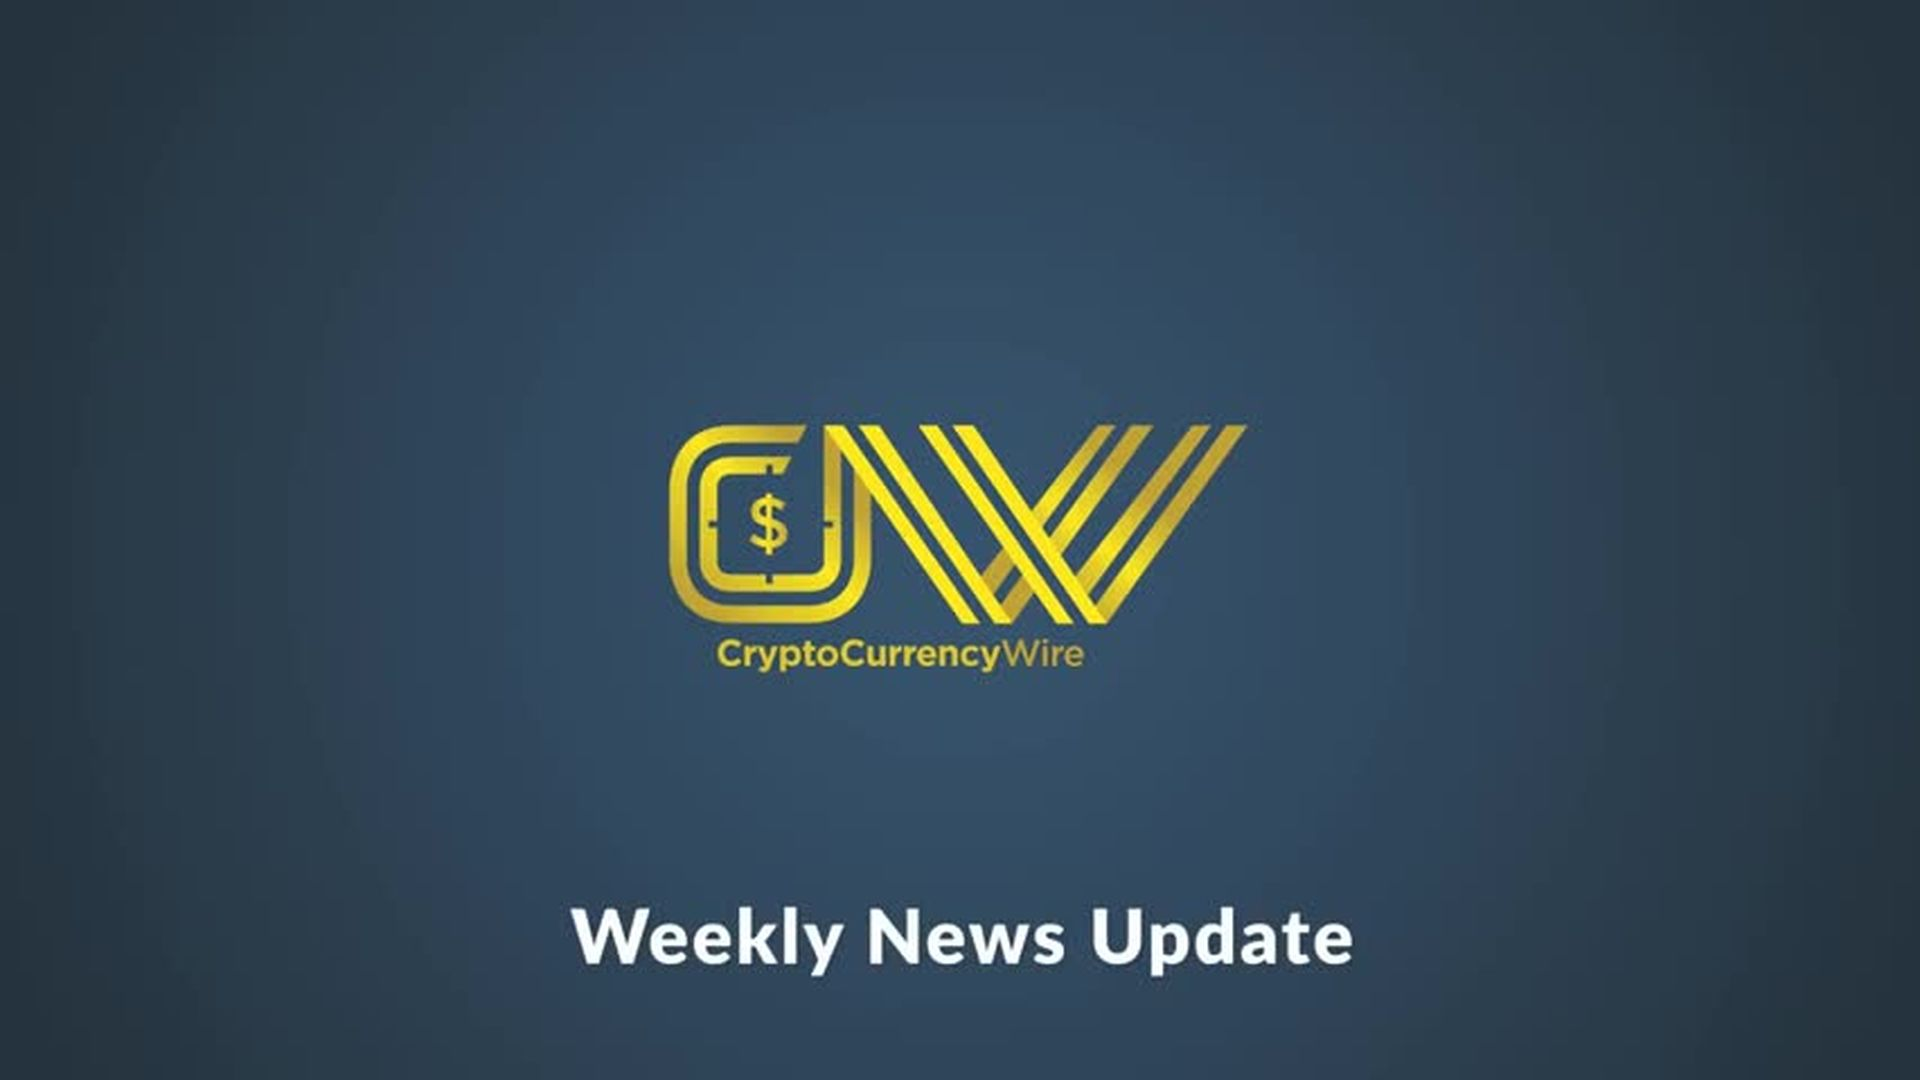 Financial Markets, Energy and Mining | CryptoCurrencyWire on The Wild West Crypto Show | Episode 99